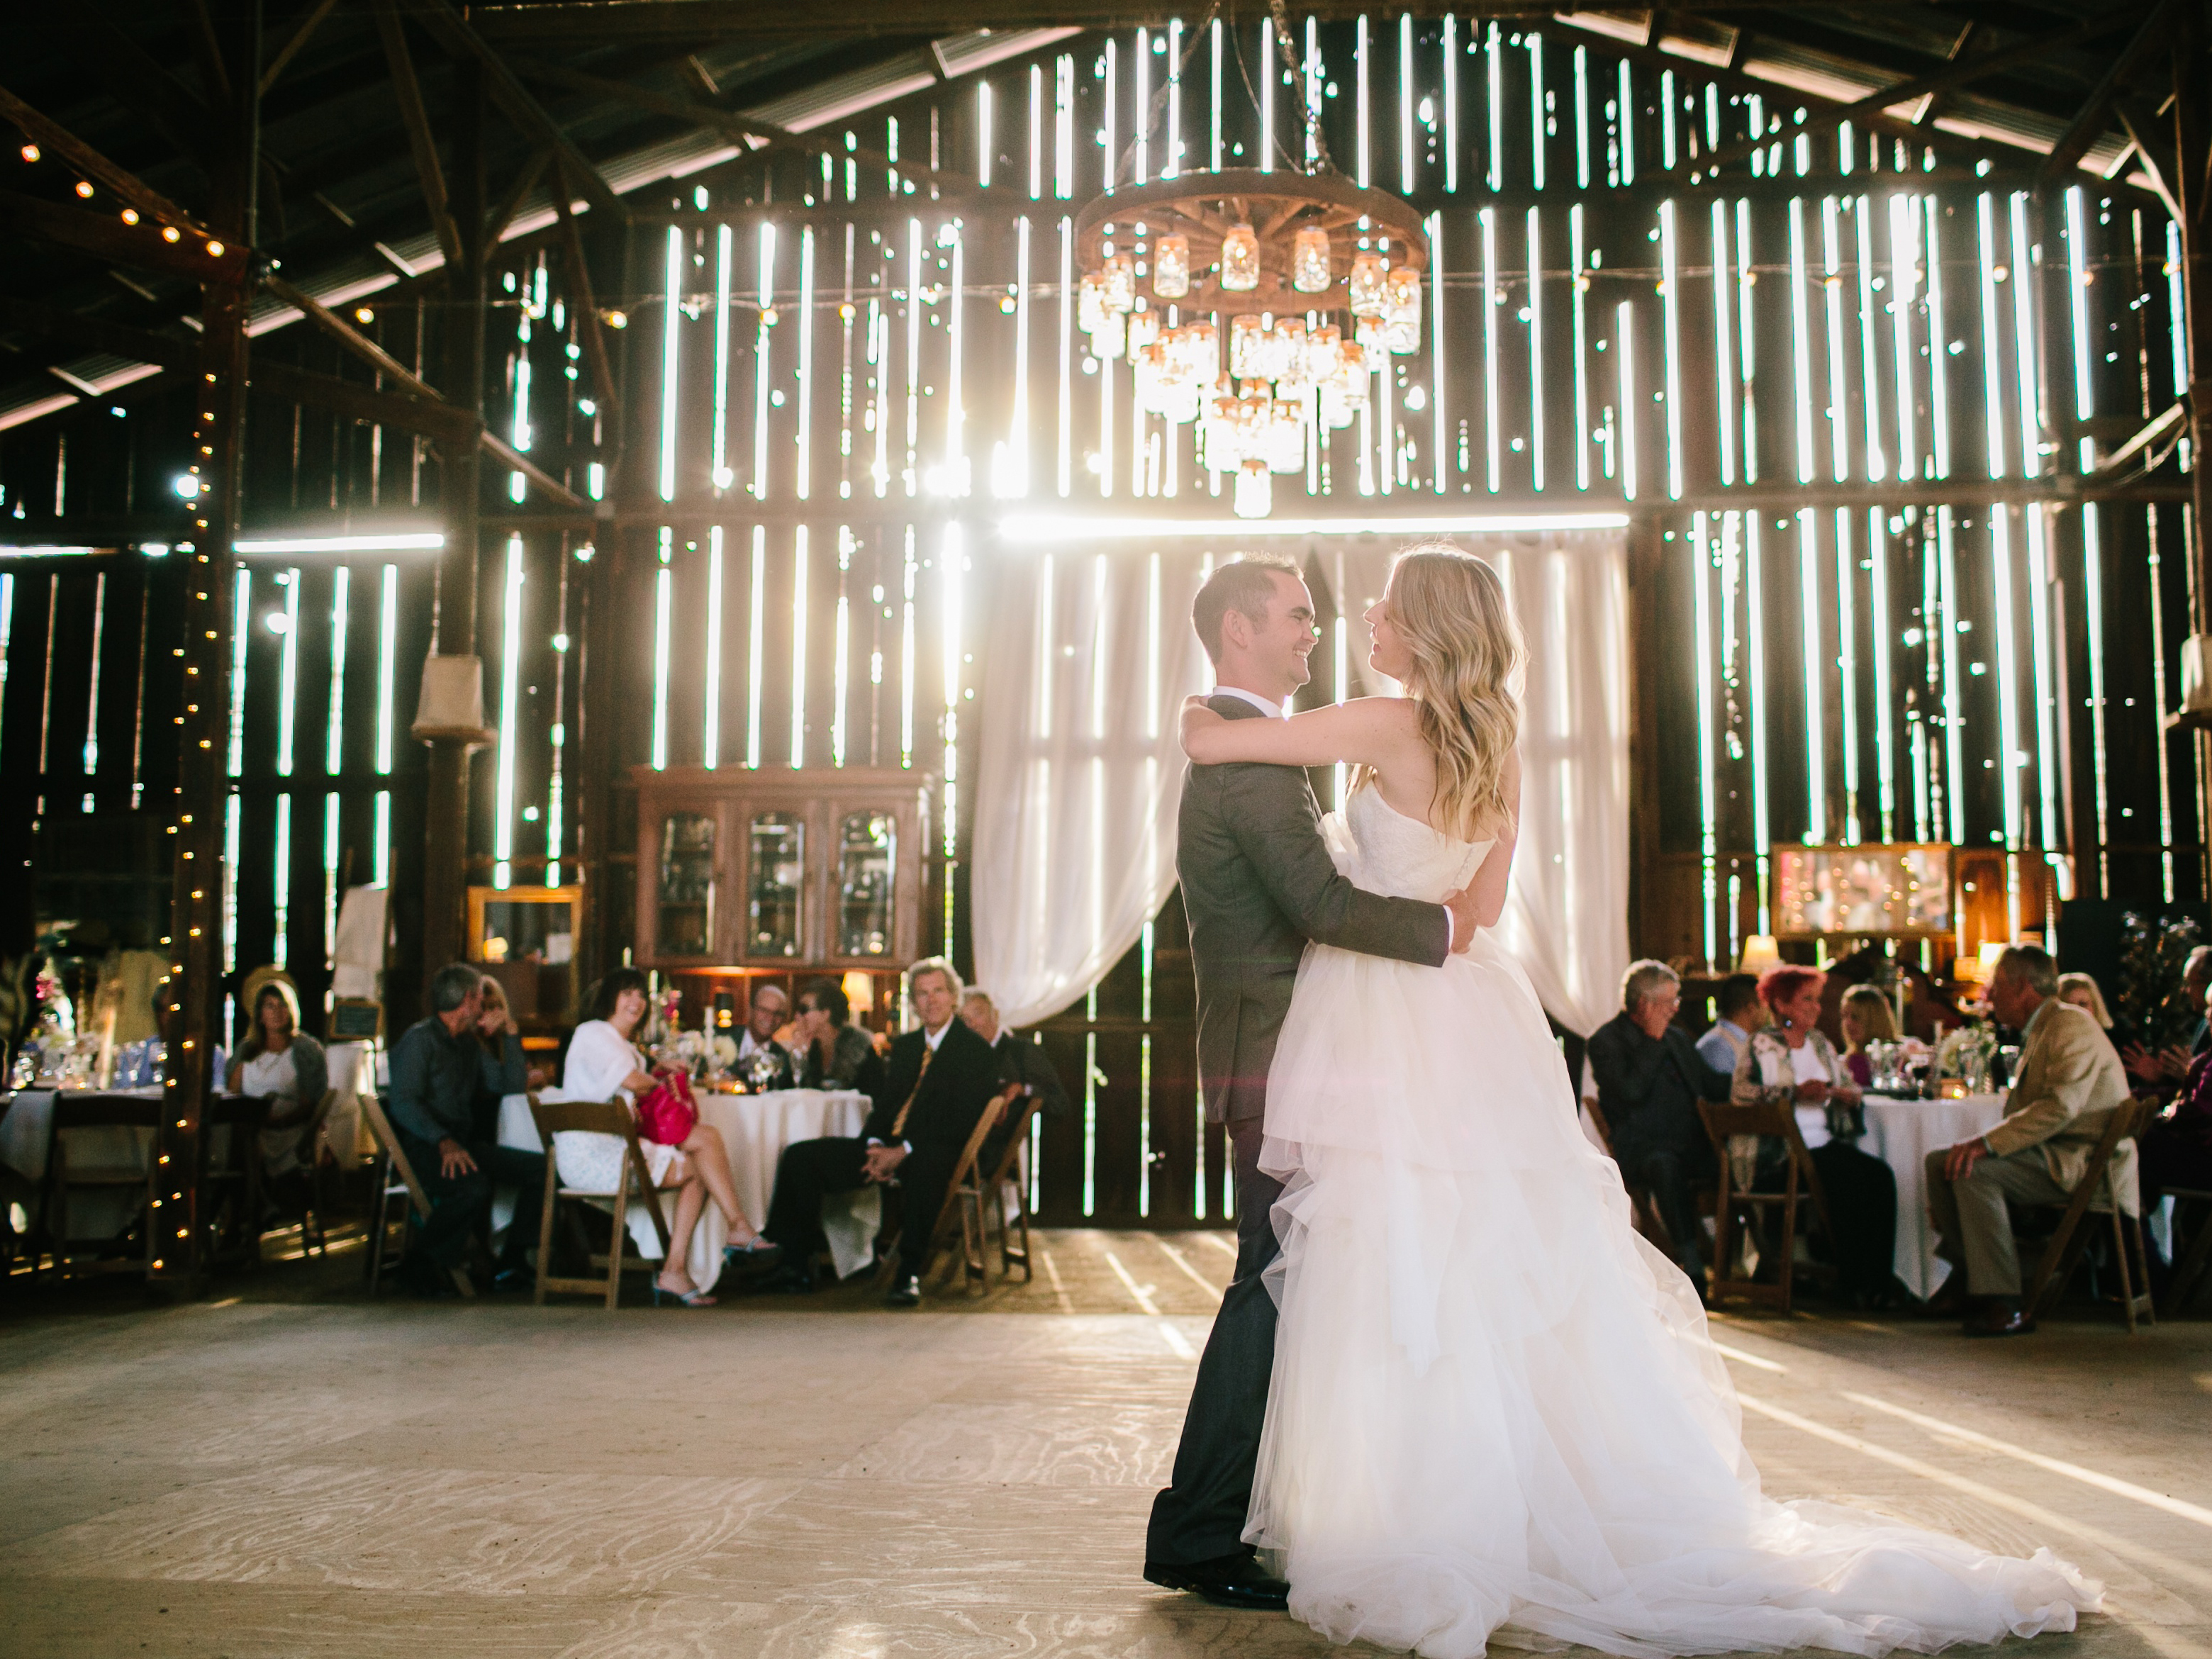 Tips To Own Your Wedding Dance Wedding Planner